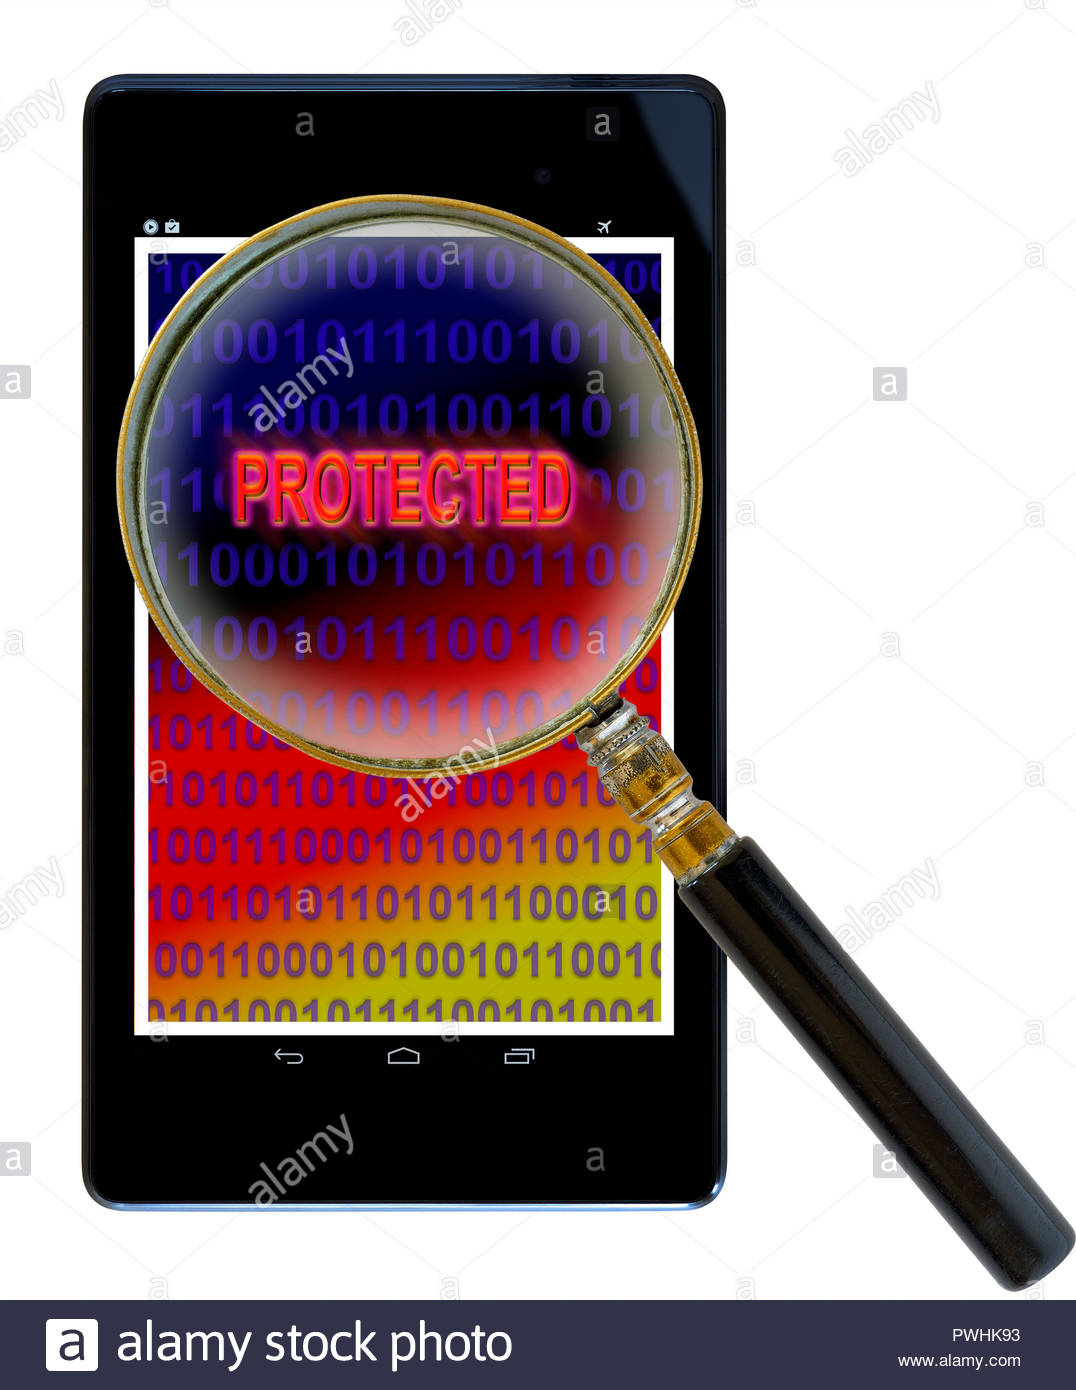 Protected shown on a tablet computer, Dorset, England, UK Stock Photo